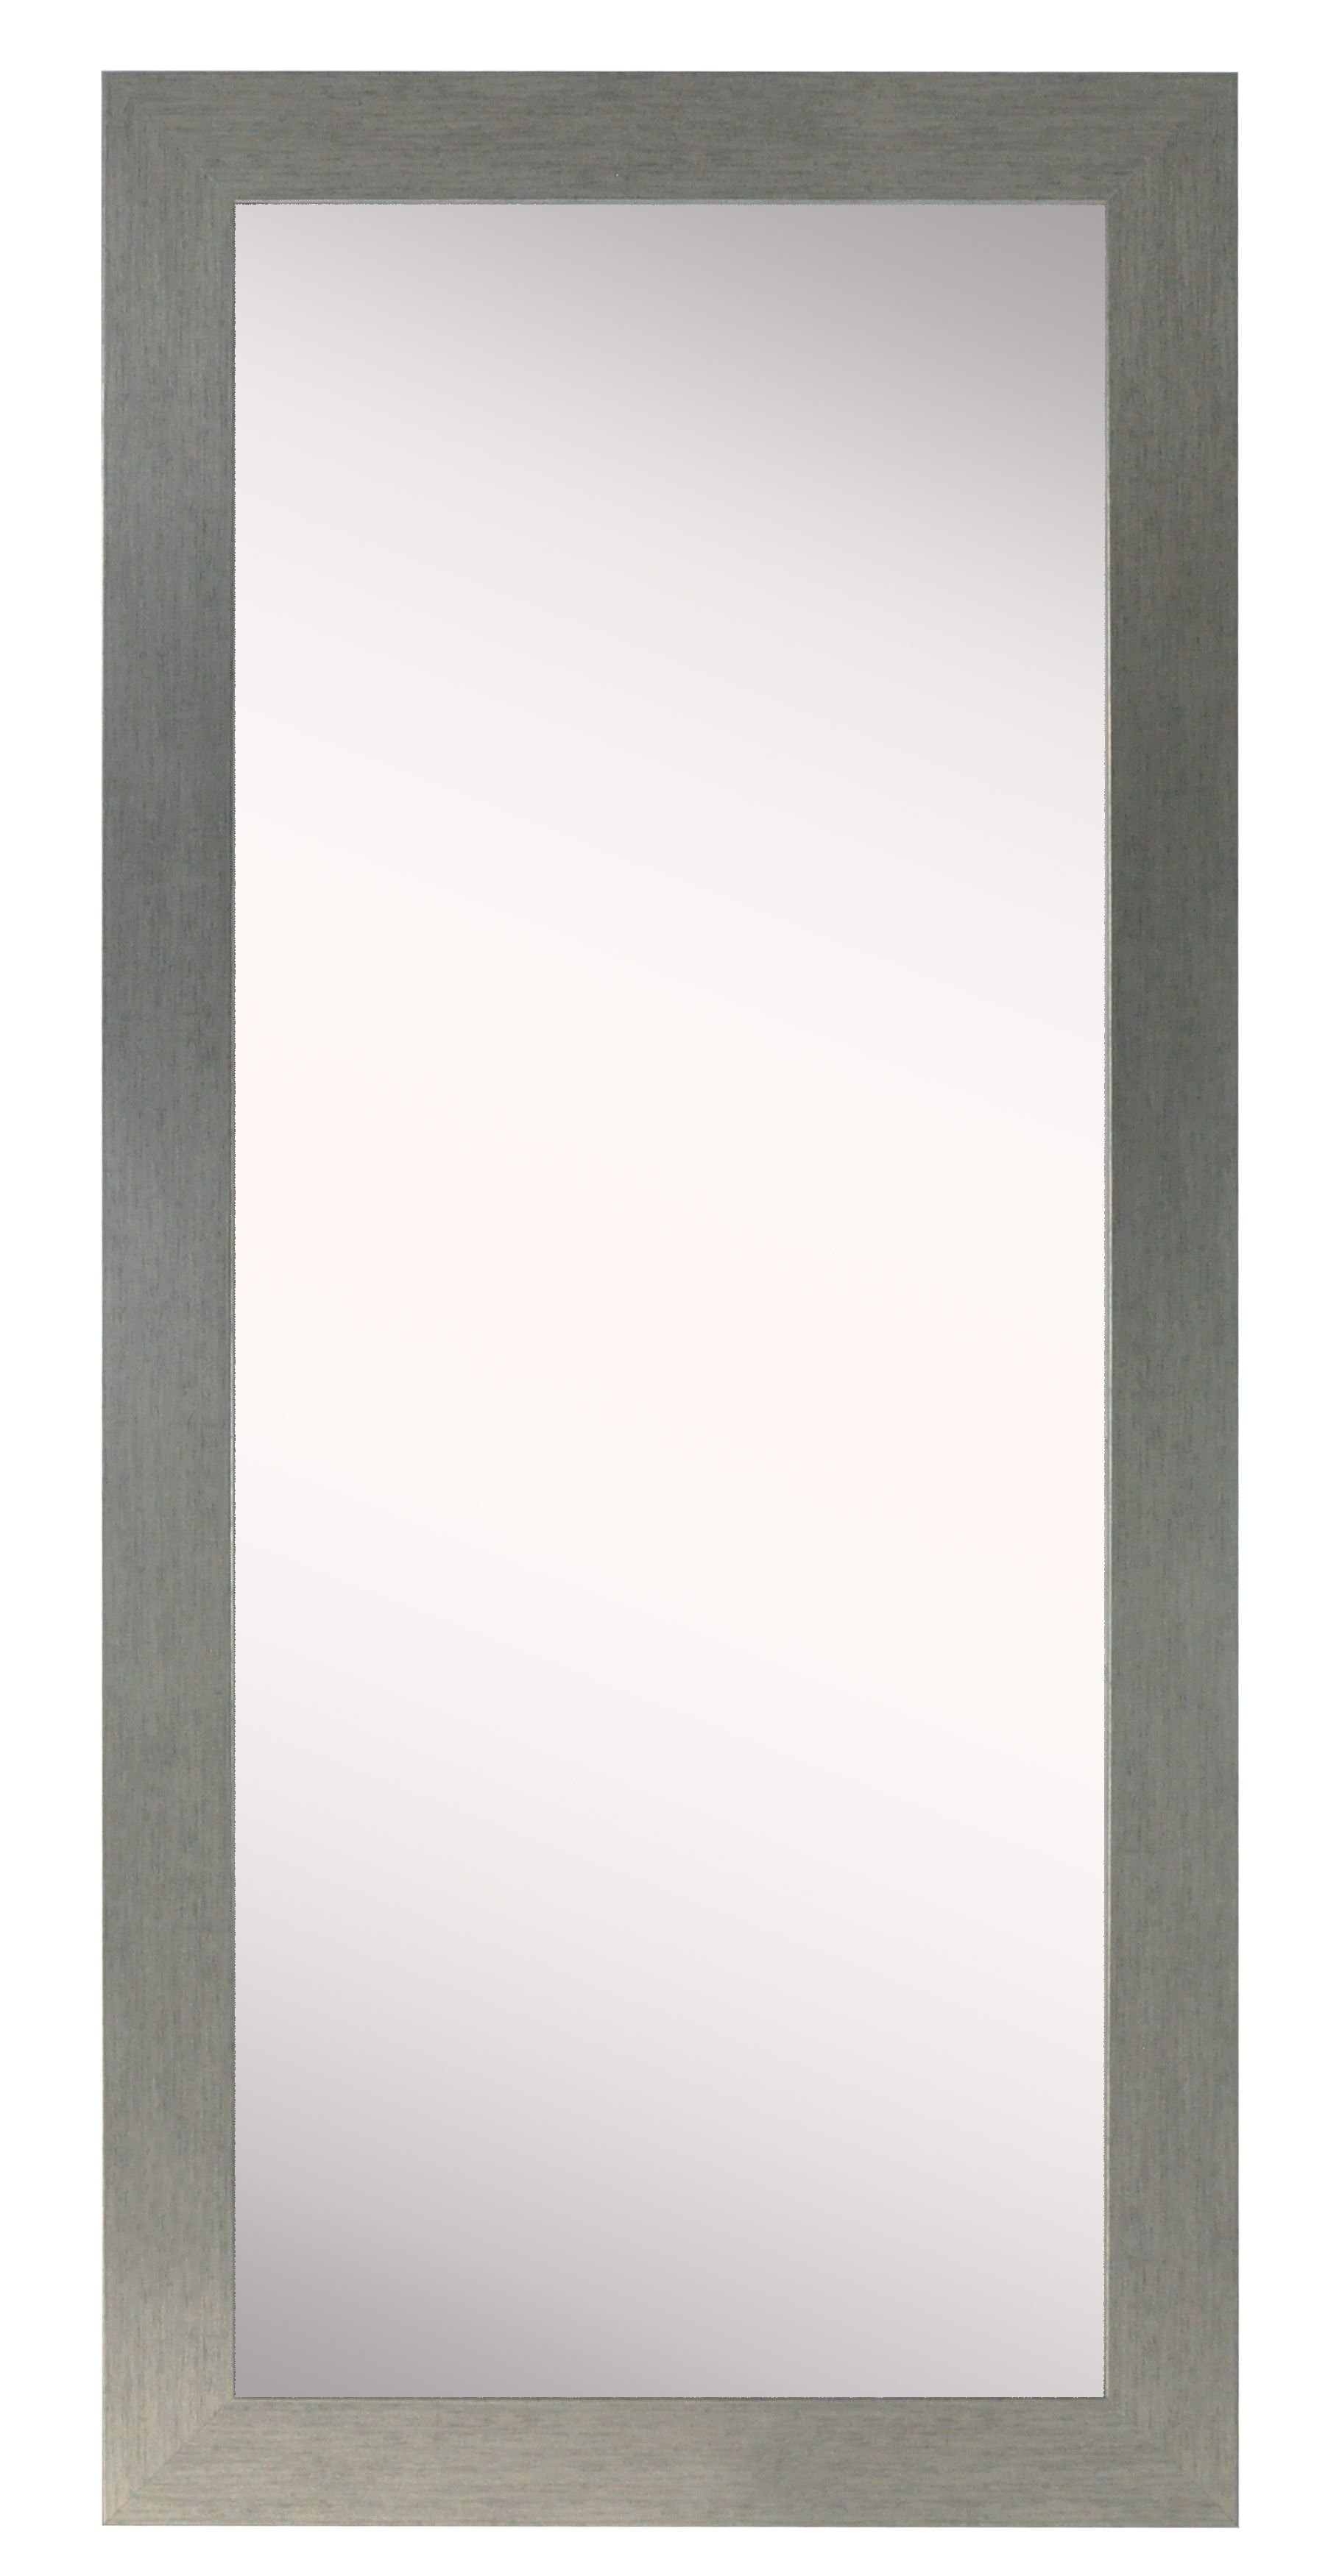 Modern & Contemporary Modern Large Wall Mirror | Allmodern intended for Pennsburg Rectangle Wall Mirrors (Image 11 of 30)